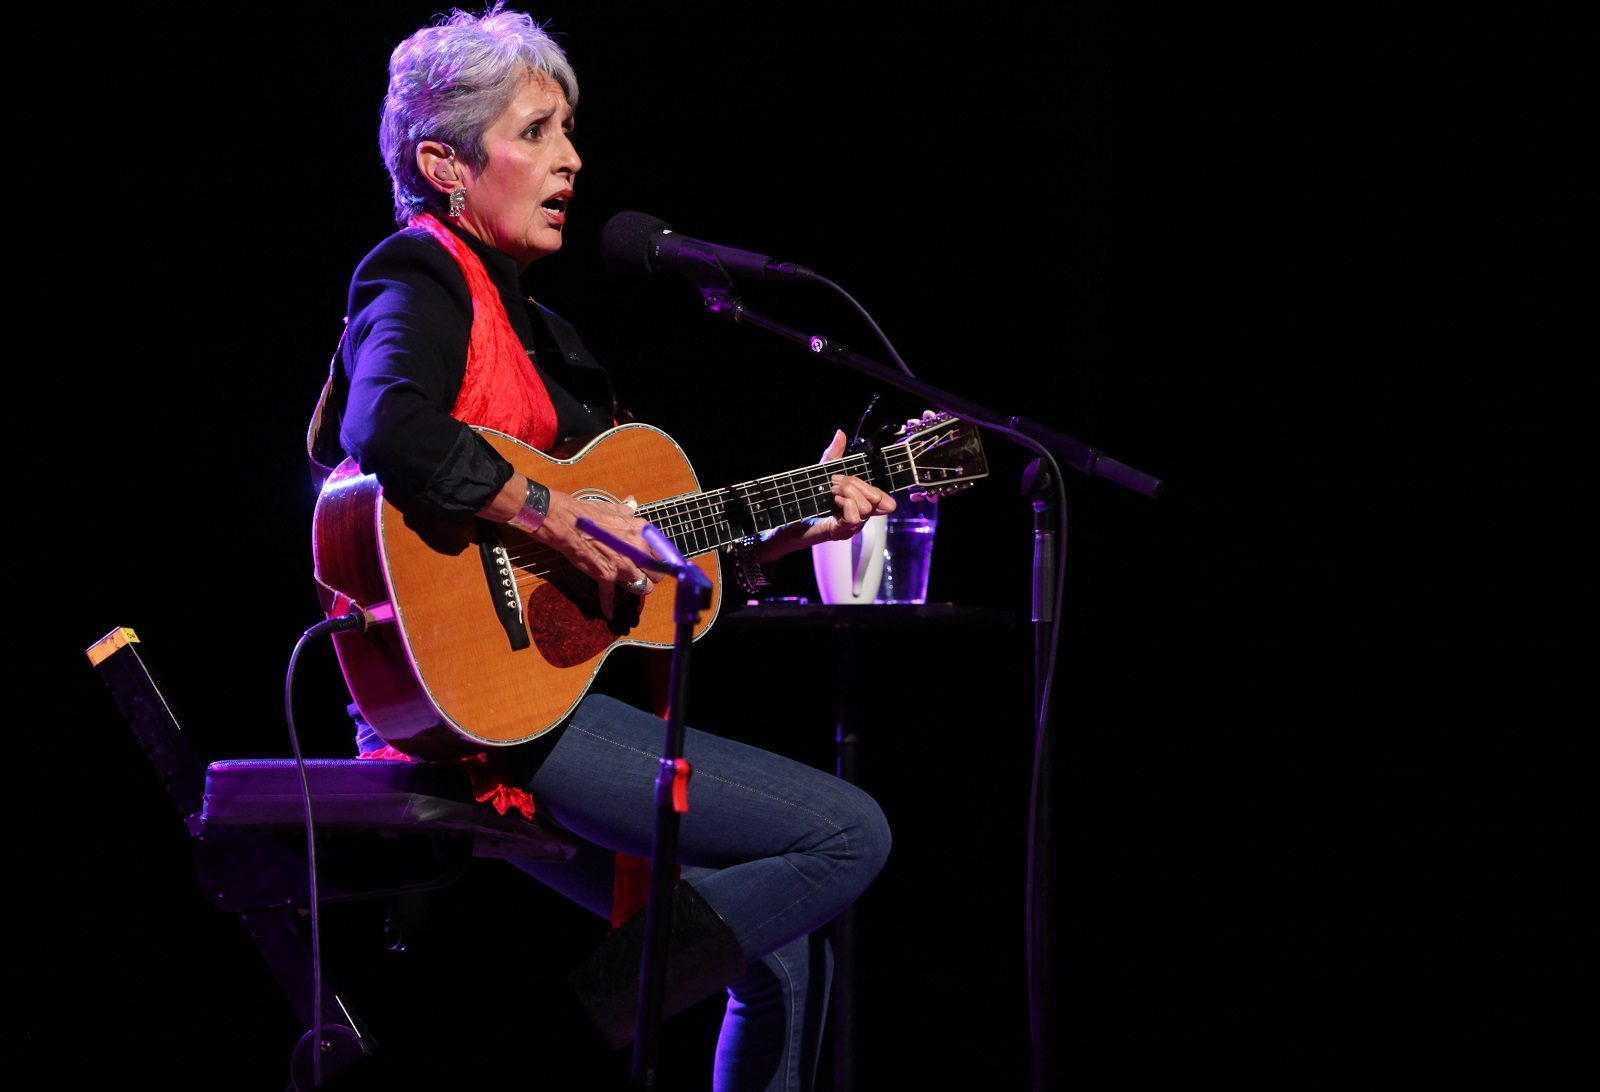 Joan Baez, pictured performing in Kleinhans in 2011, performed March 26 in Asbury Hall. (Buffalo News file photo)